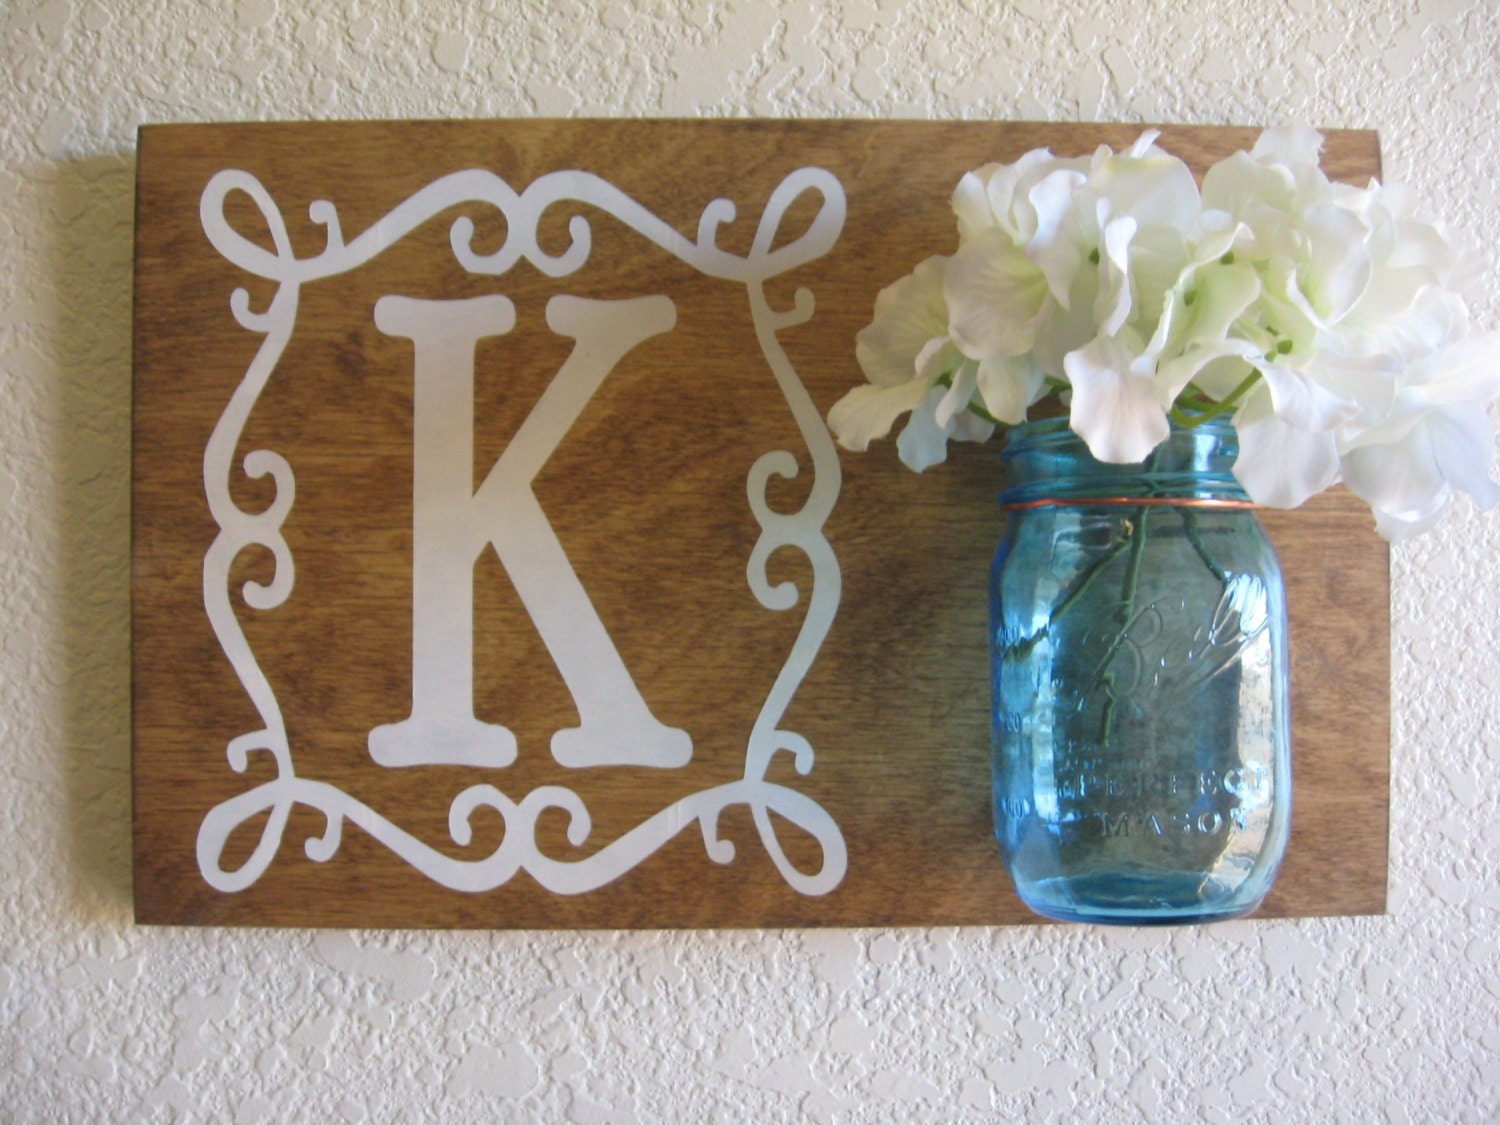 Wall Decor With Mason Jars : Mason jar wall decor monogram sign